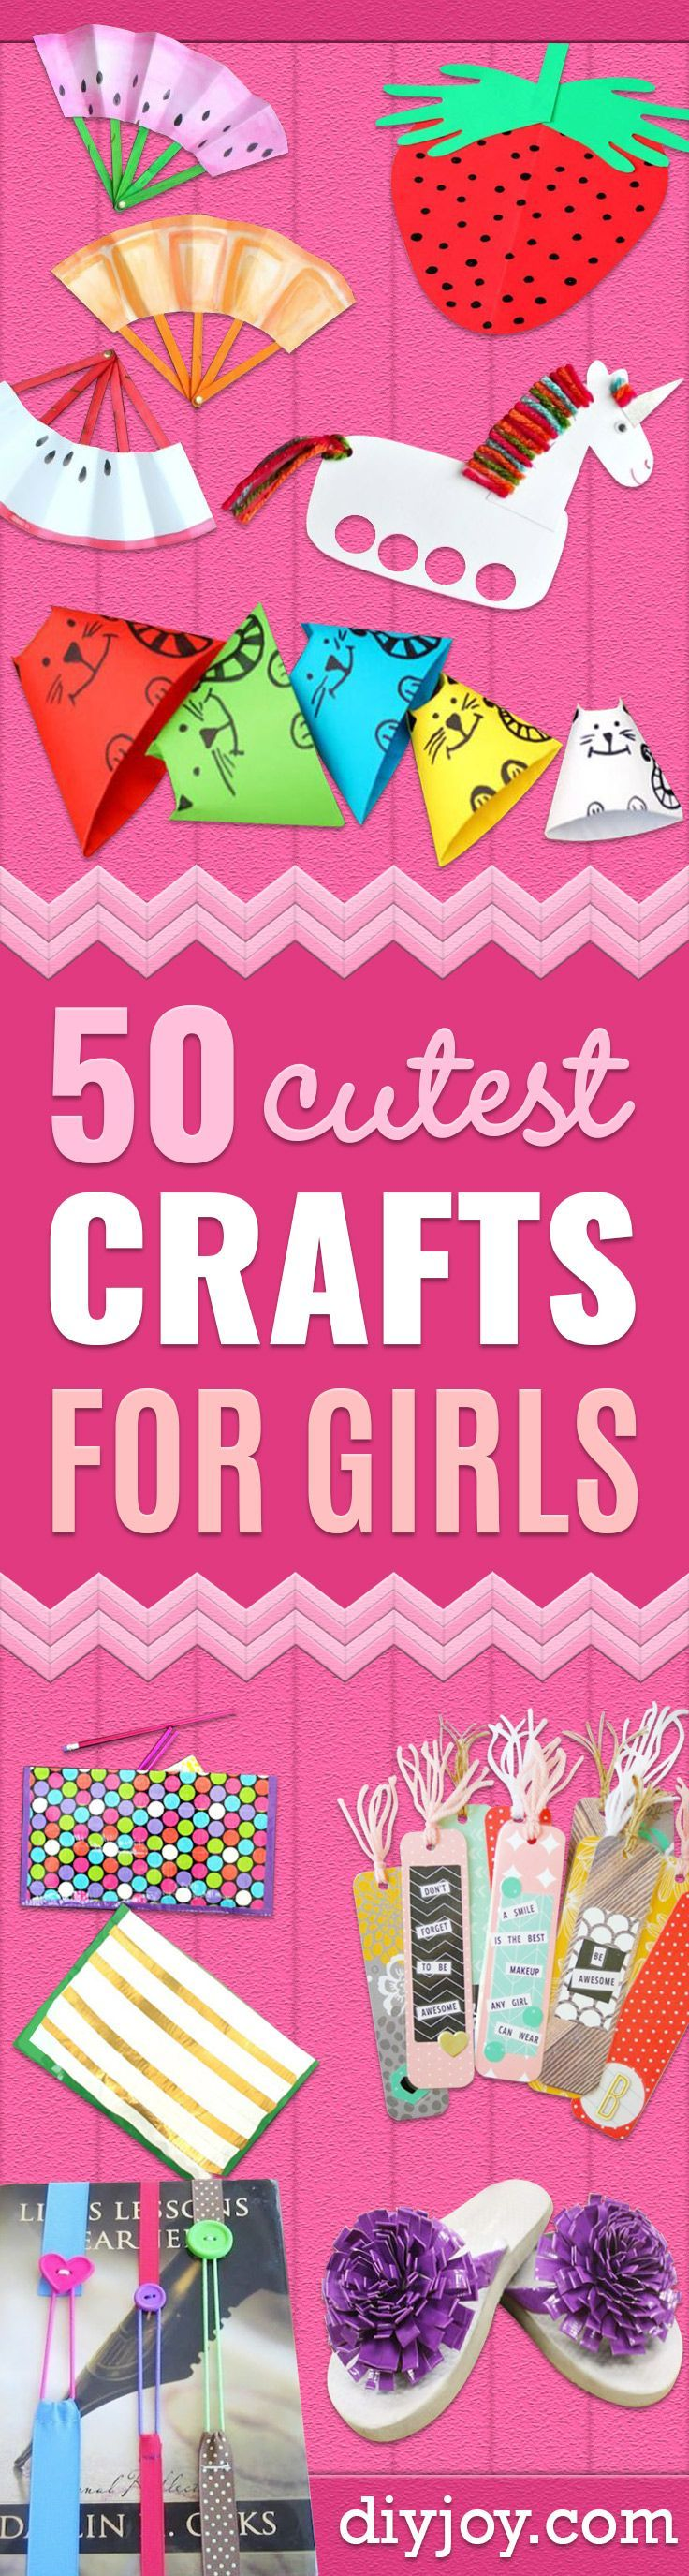 15+ Cute easy crafts to do at home information